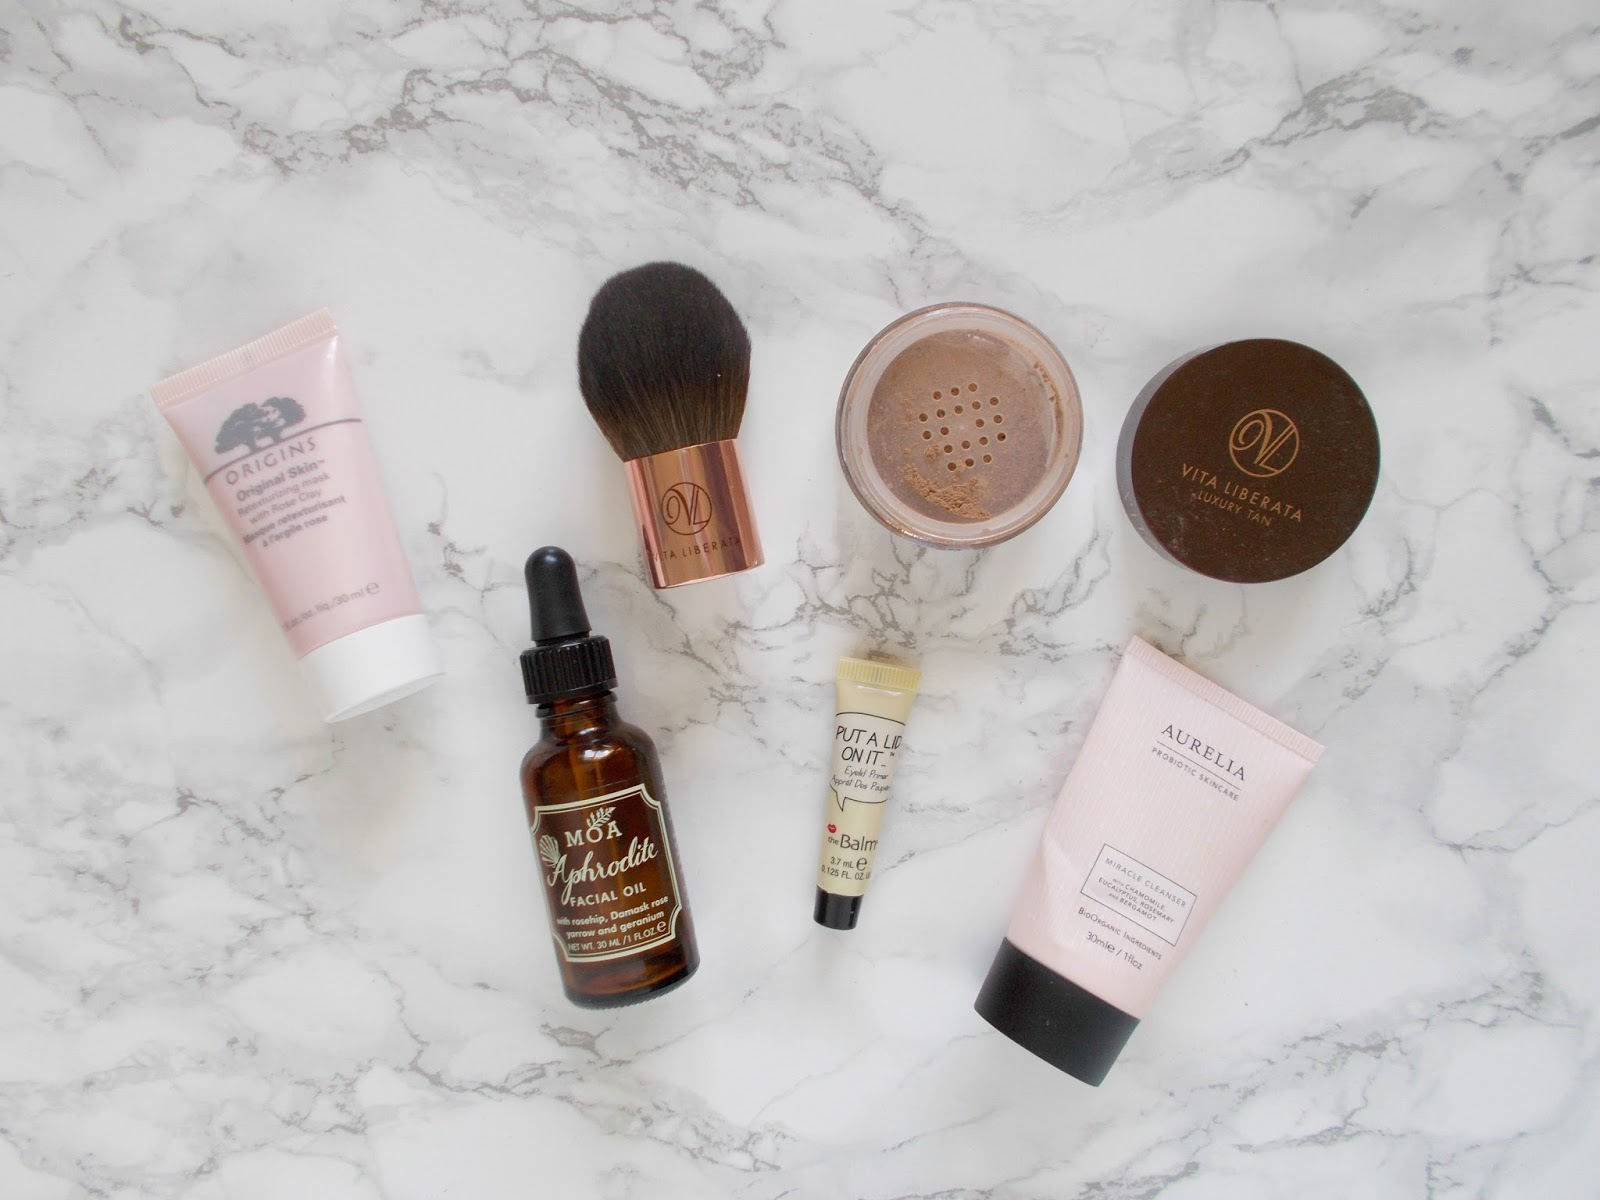 best beauty box finds latest in beauty cohorted origins moa aurelia the balm vita liberata